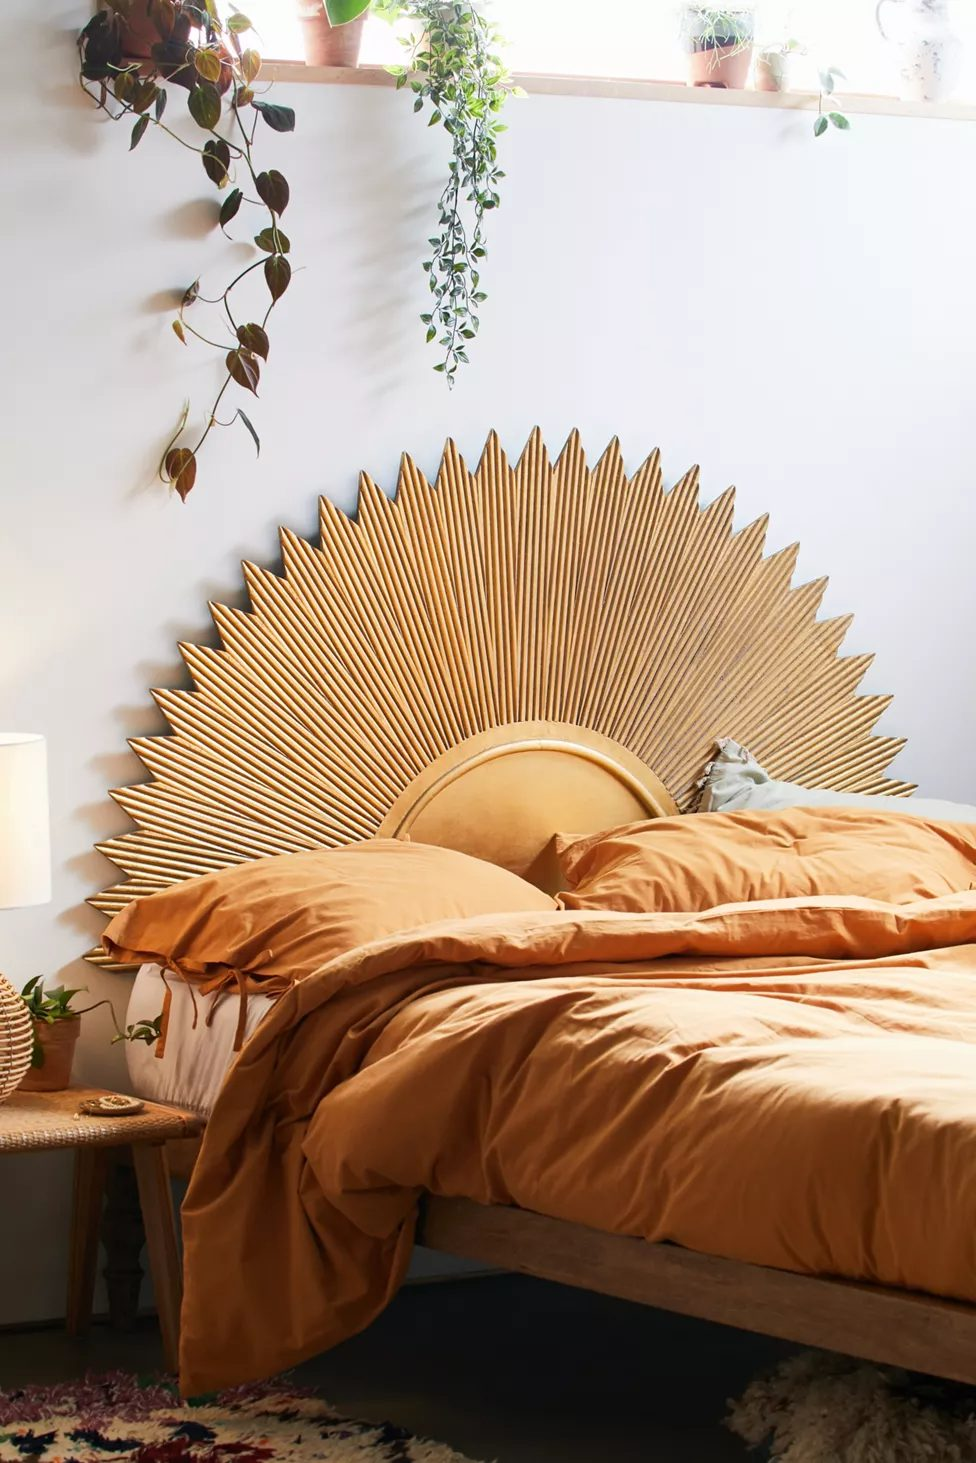 Affordable stores like Anthropologie home: Urban Outfitters